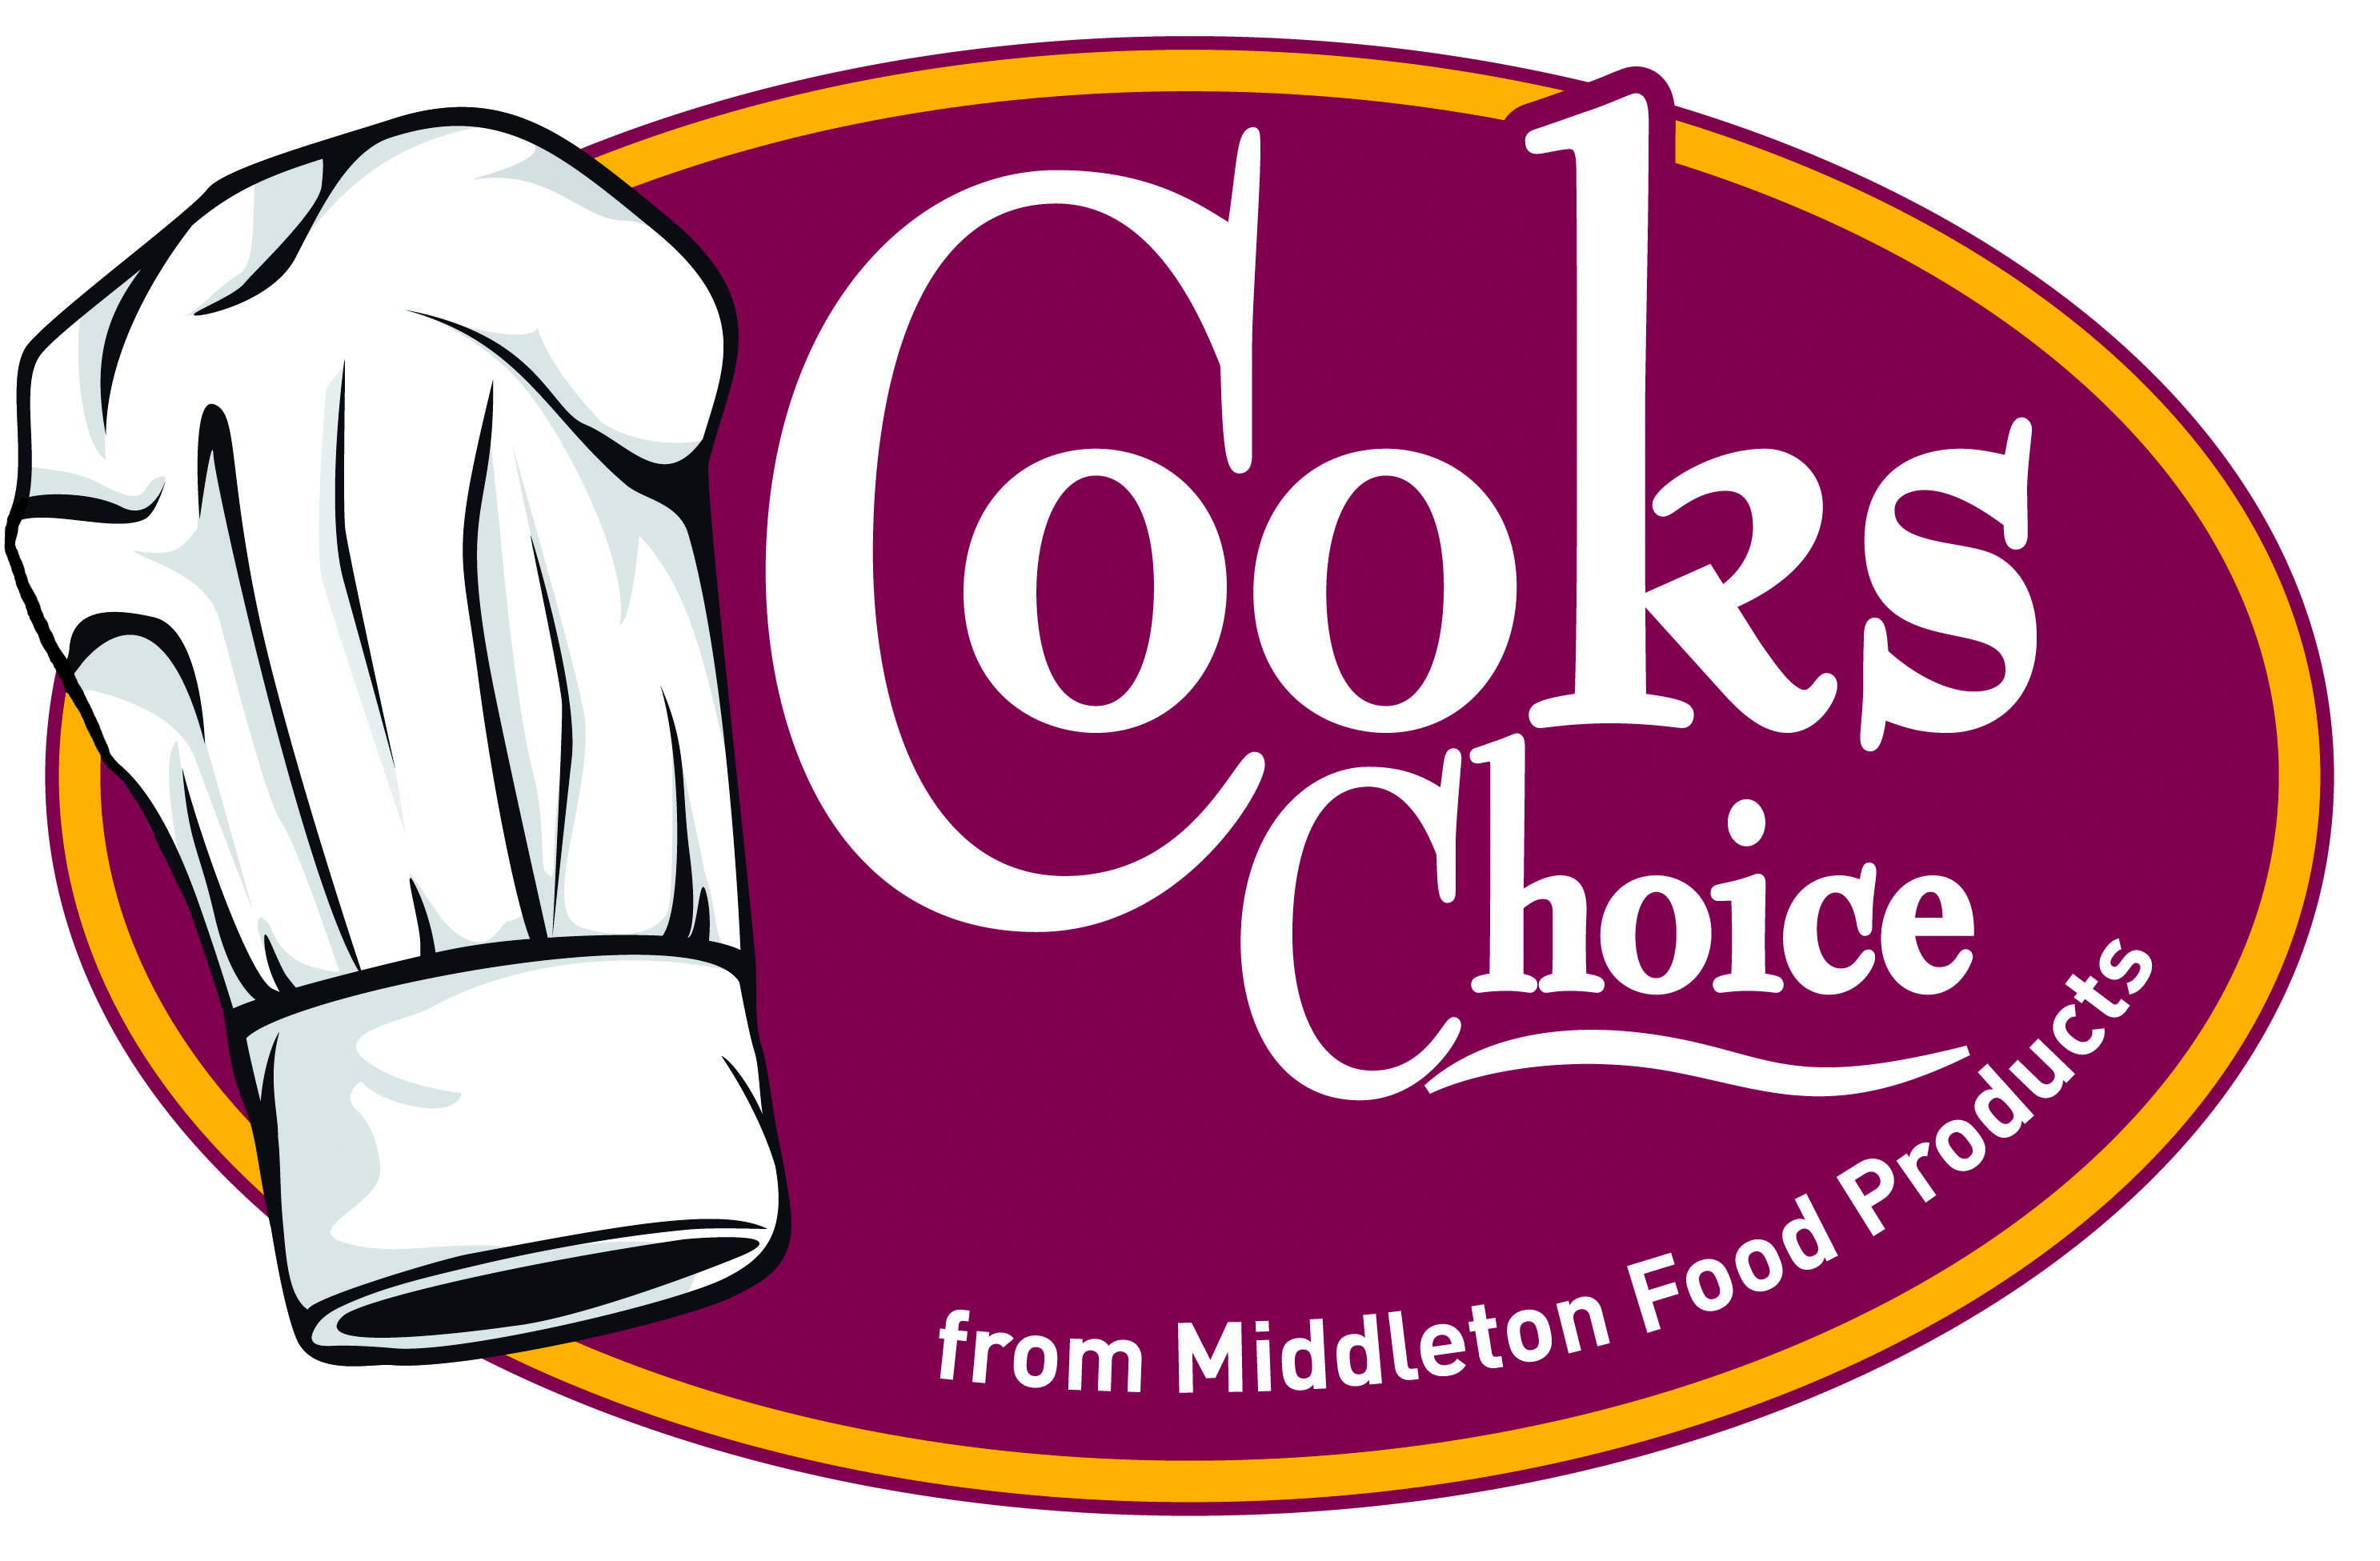 Product Maker: Cook's Choice